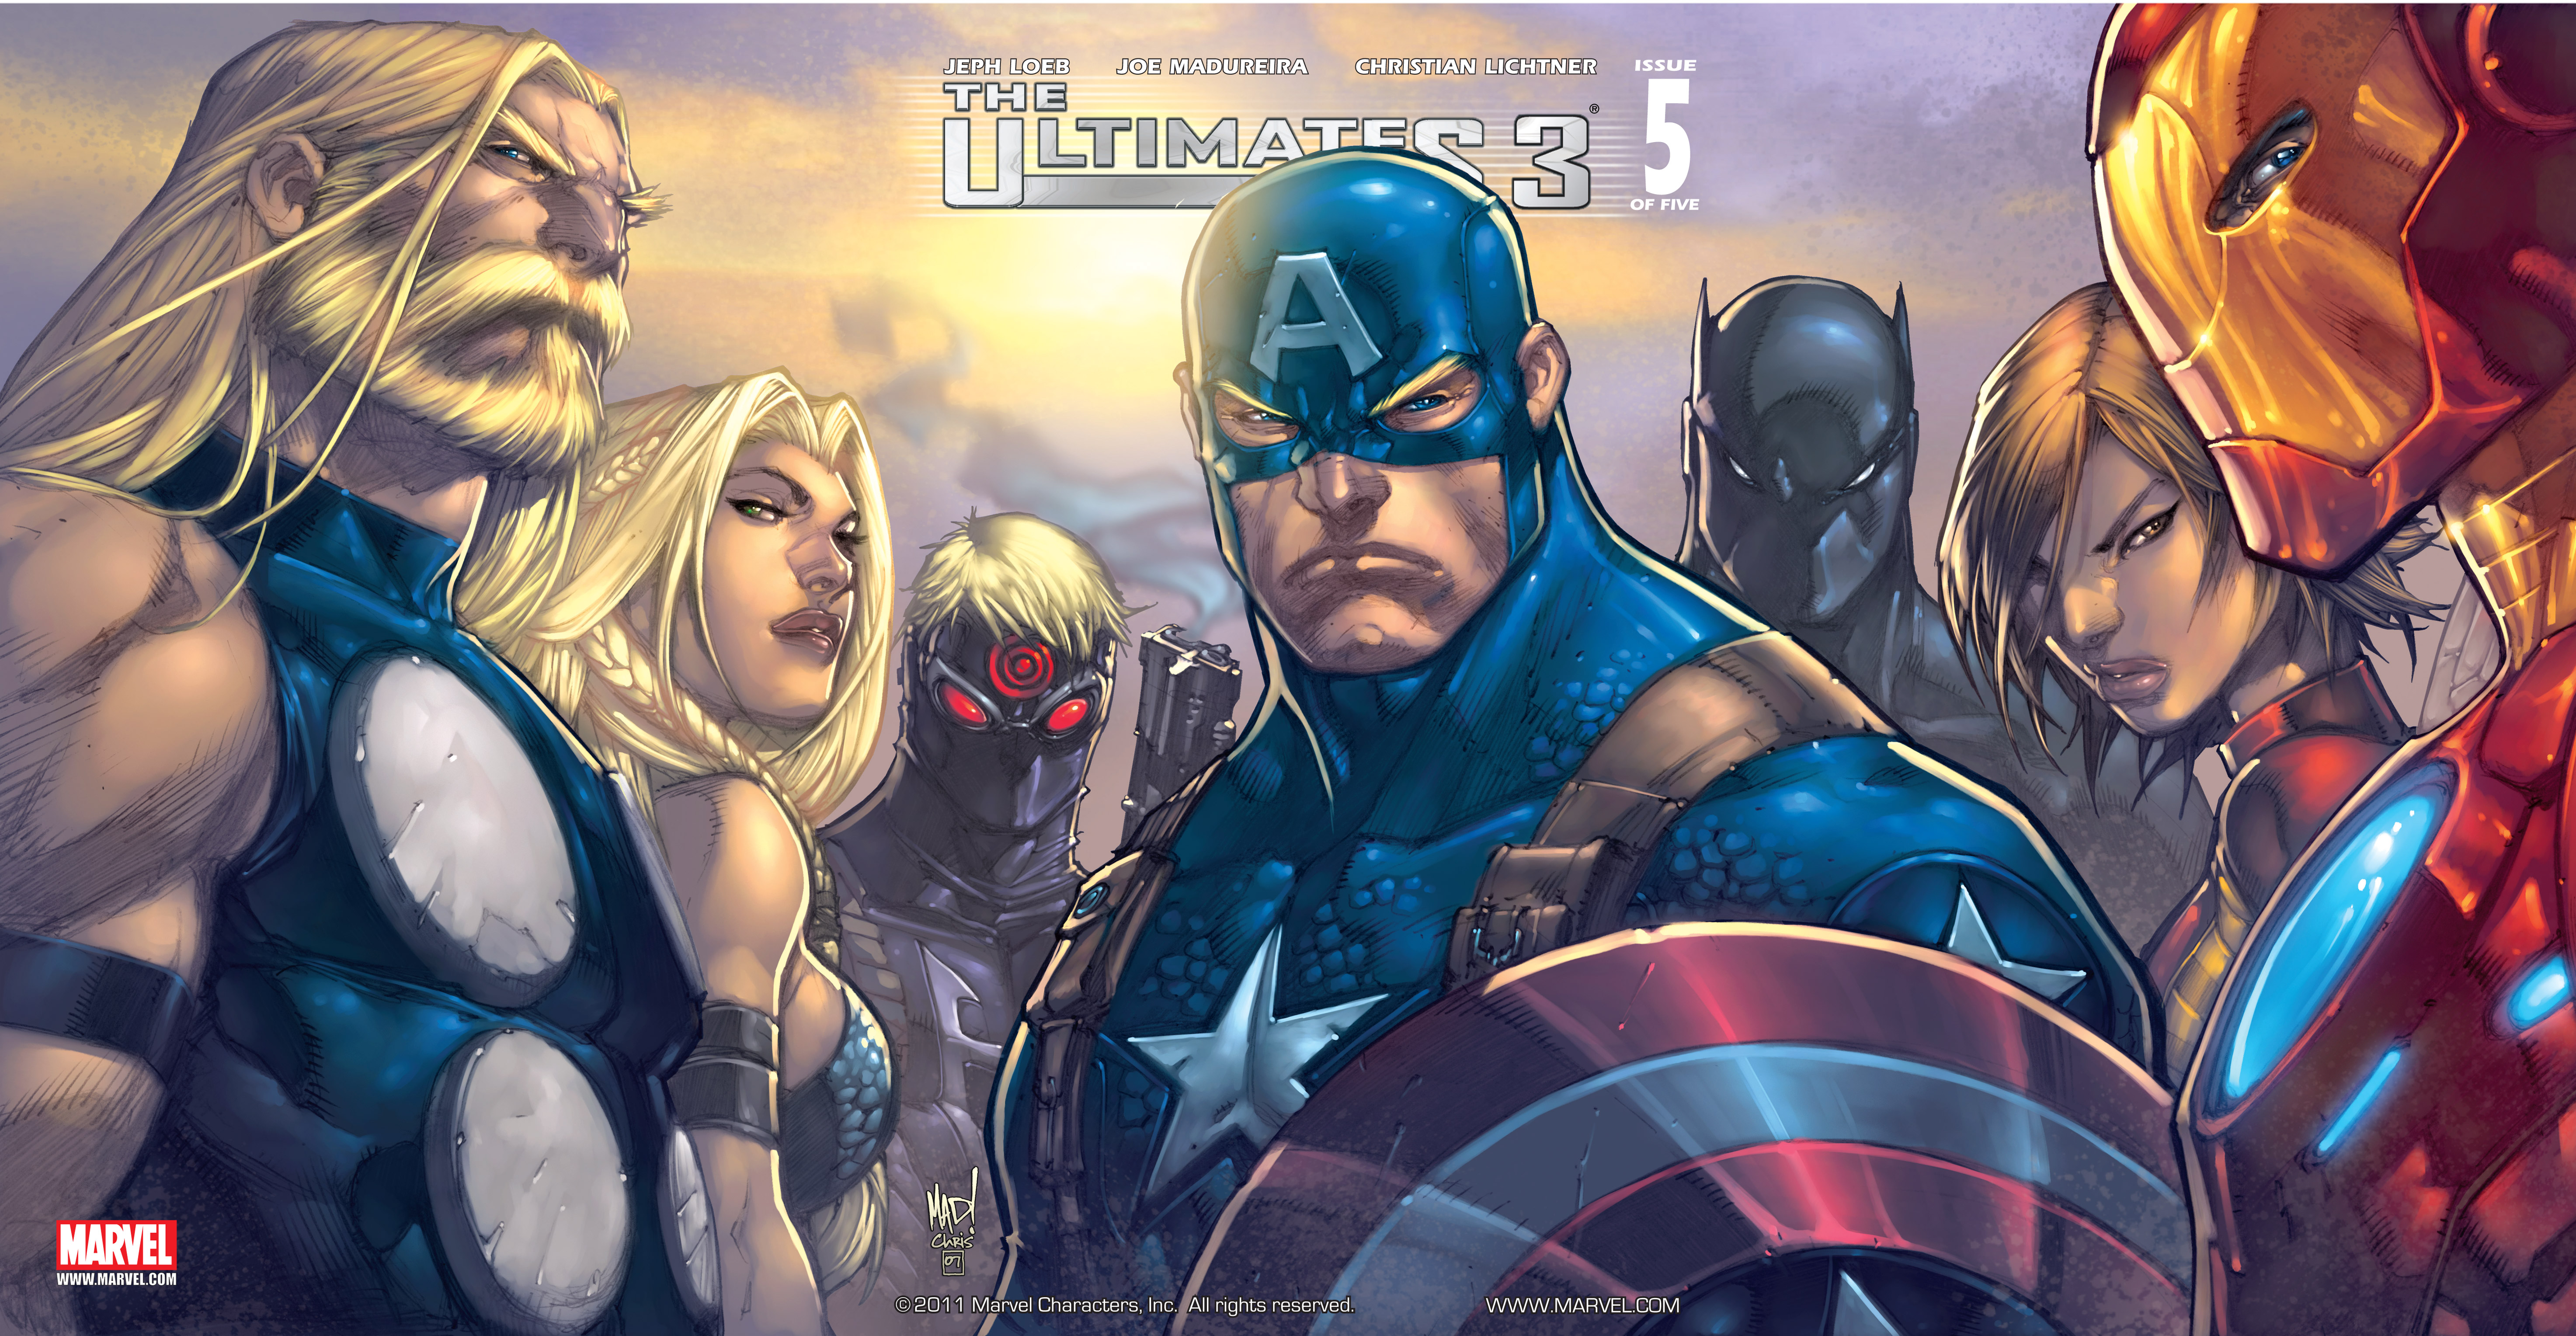 Read online Ultimates 3 comic -  Issue #5 - 2